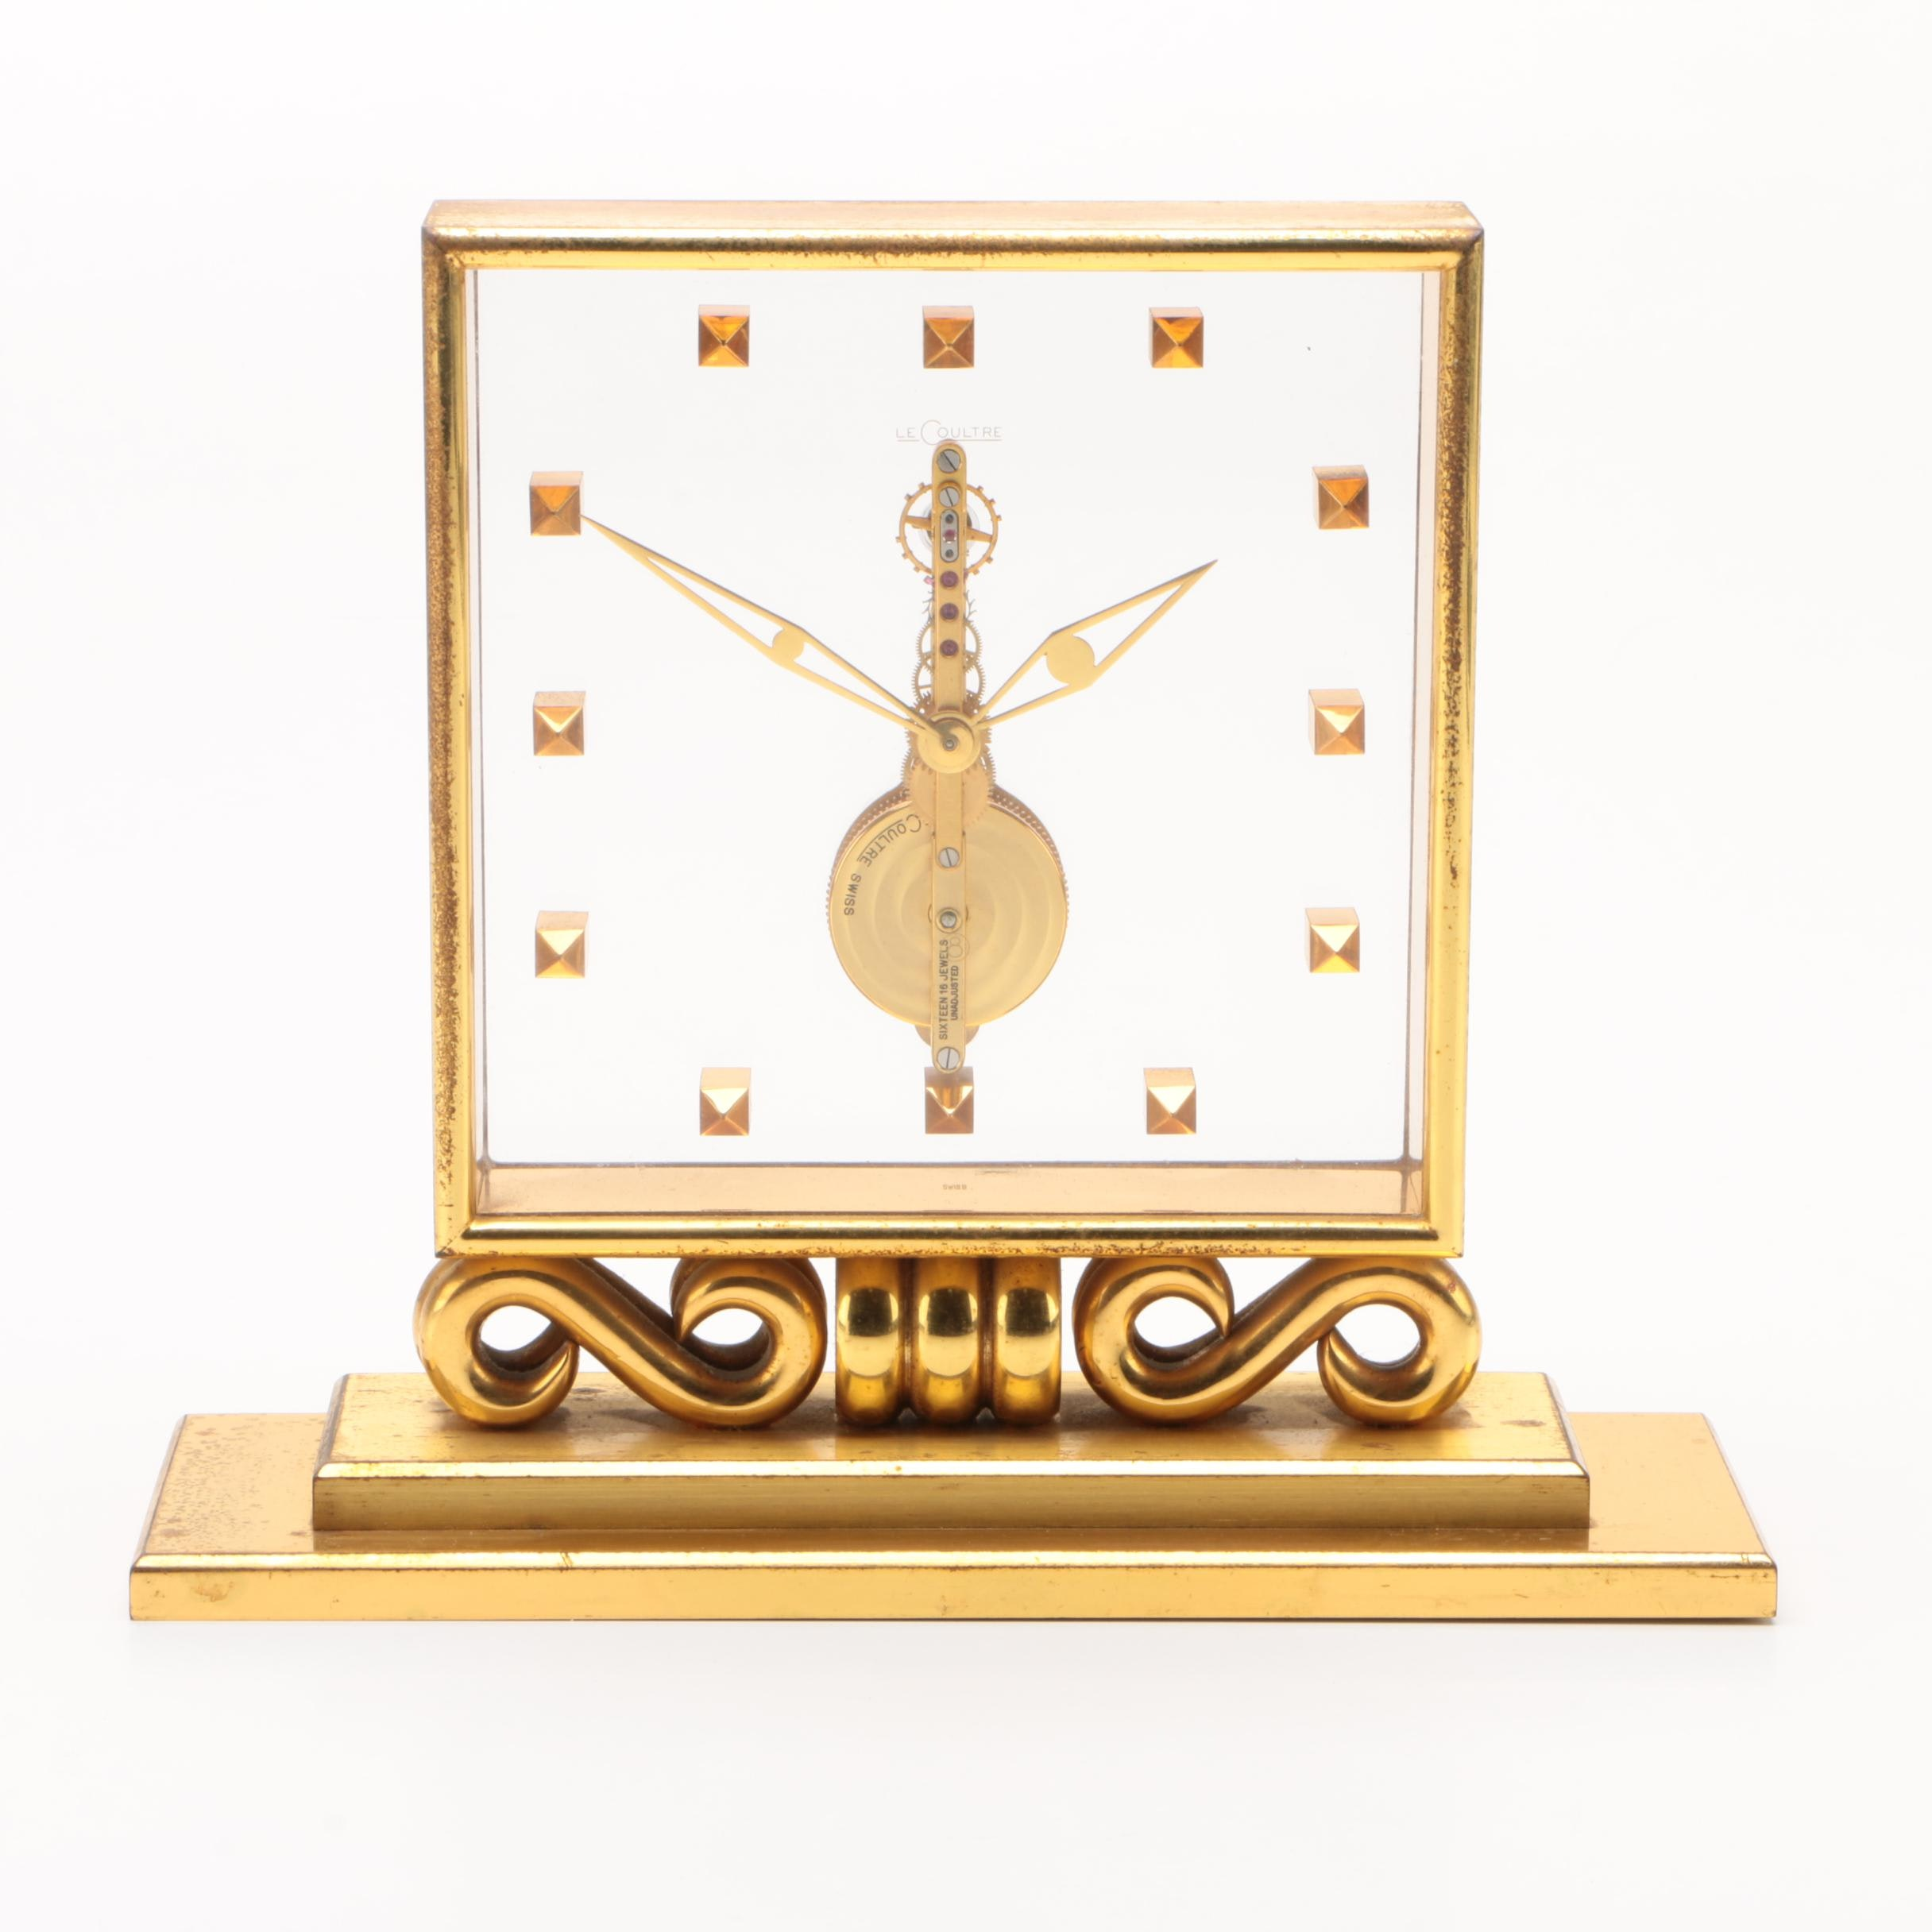 LeCloultre Gold Tone Metal and Lucite Inline Desk Clock, Early 20th Century